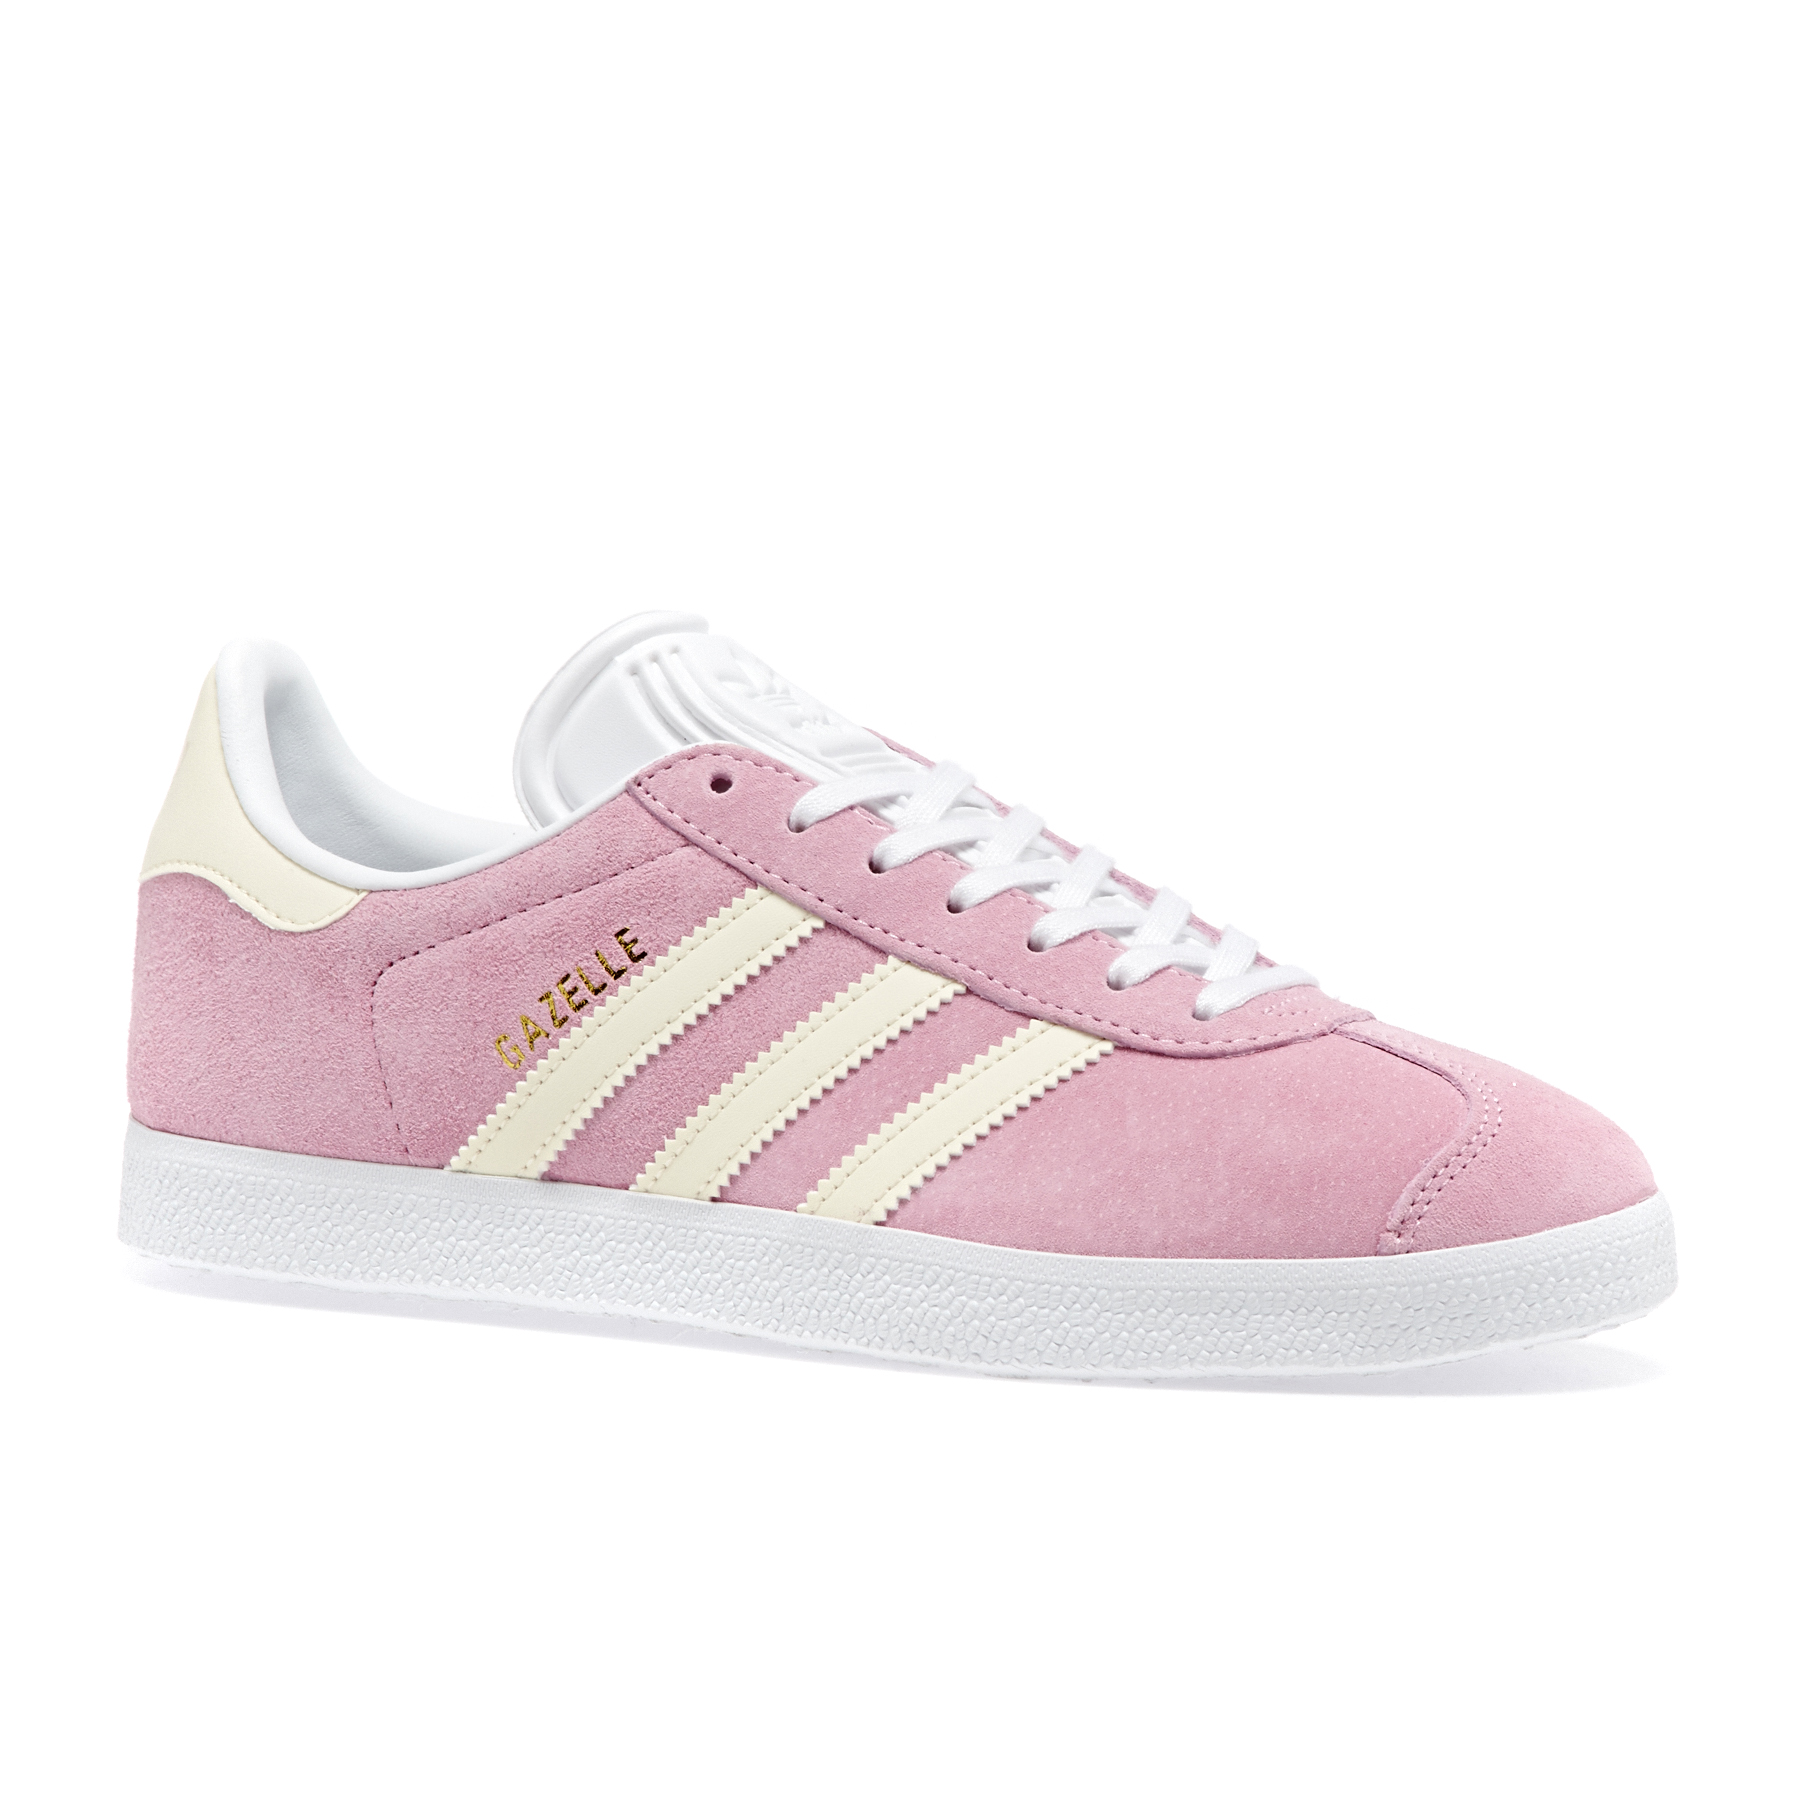 Adidas Originals Gazelle Womens Shoes Free Delivery